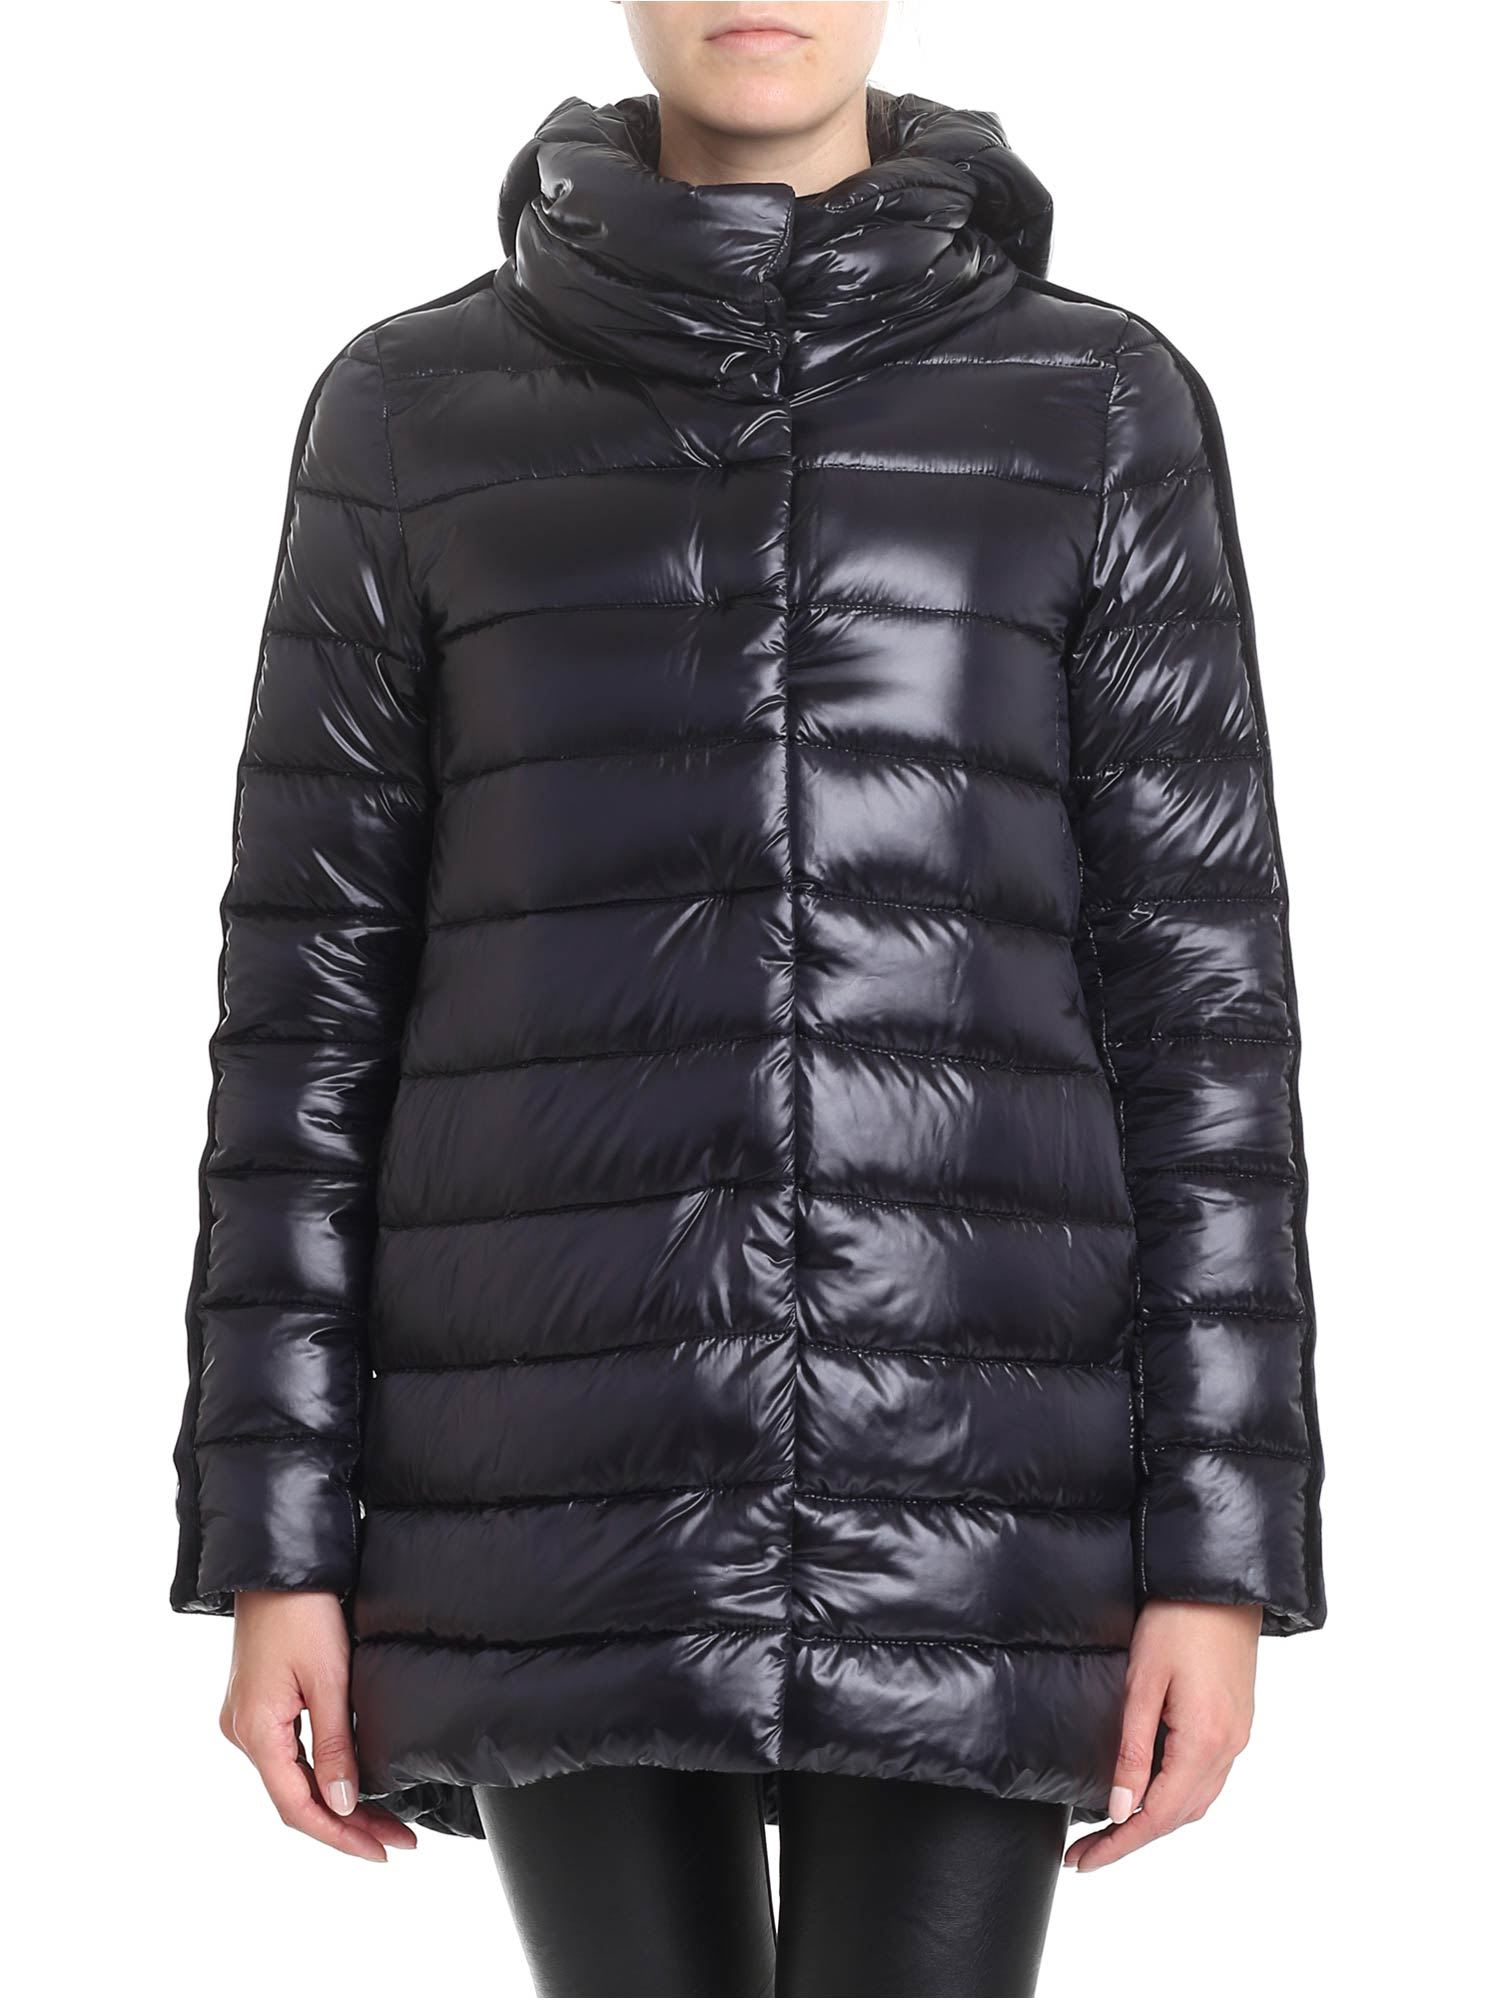 Herno – Resort Down Jacket With Stripes On The Sleeves